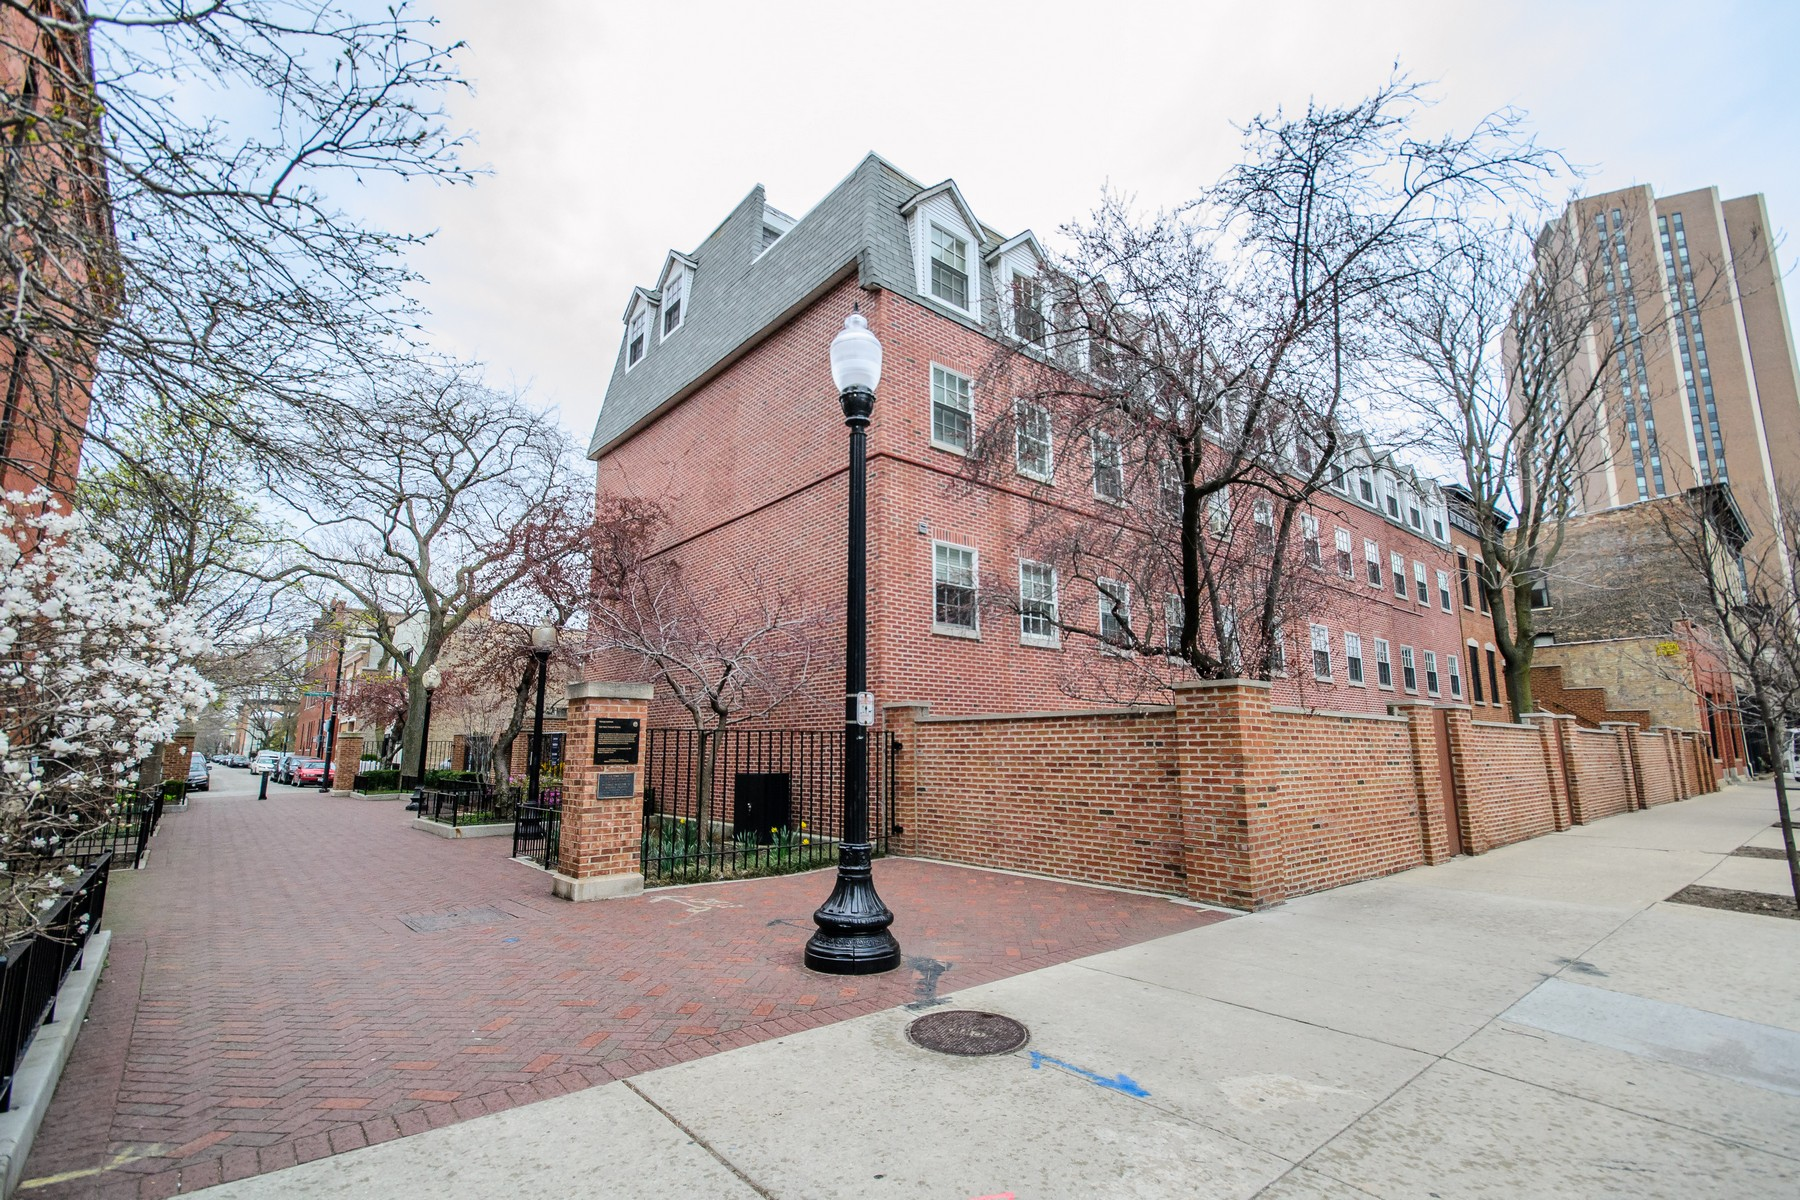 コンドミニアム のために 売買 アット Beautiful Duplexed Up Condo in Old Town! 200 W Menomonee Street Unit 9 Near North Side, Chicago, イリノイ, 60614 アメリカ合衆国